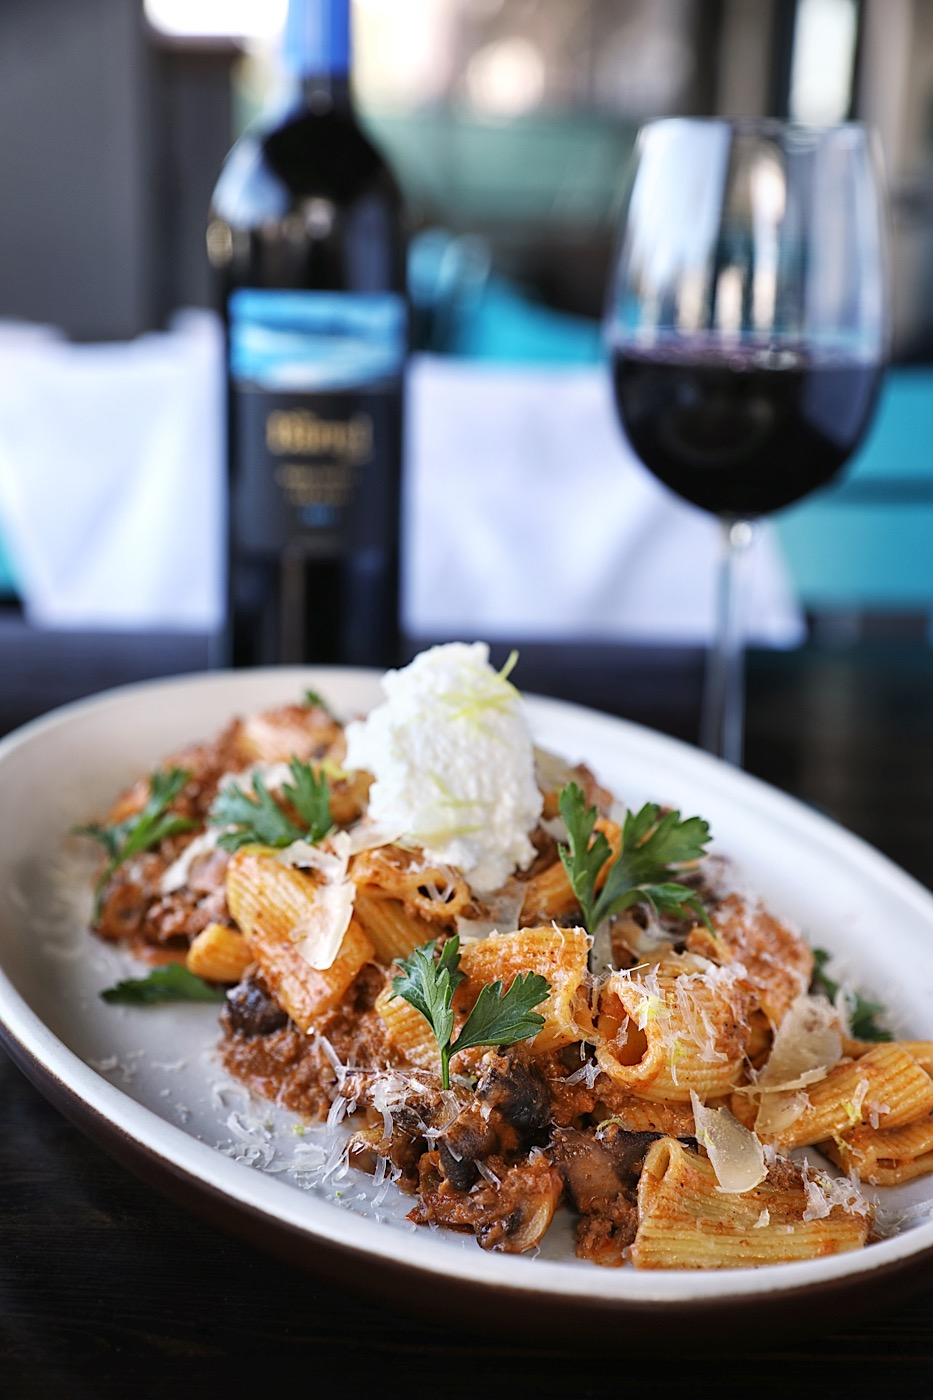 Rigatoni Bolognese with 2015 Hill Farm Estate Barrel Blend at Beaumont's Eatery